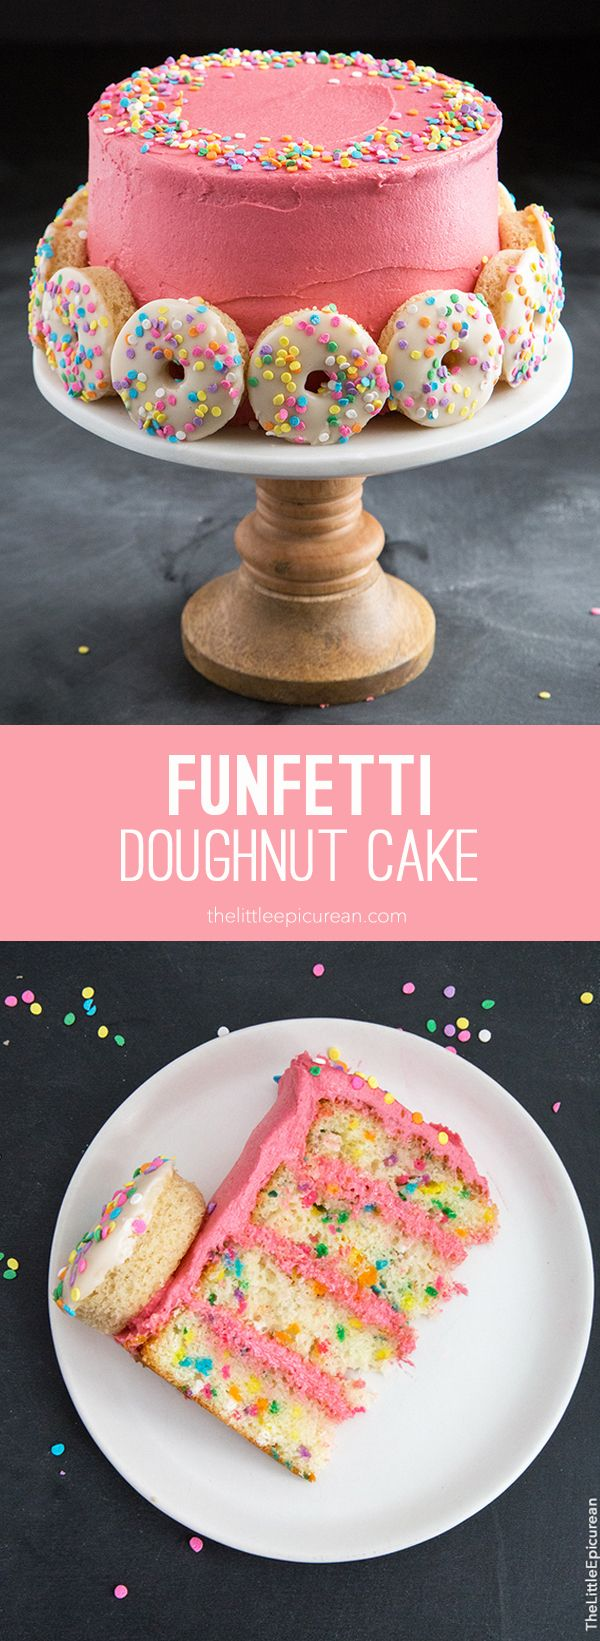 This funfetti doughnut cake basically has everything I could ever want in a dessert: coffee, doughnuts, cake, and whiskey.